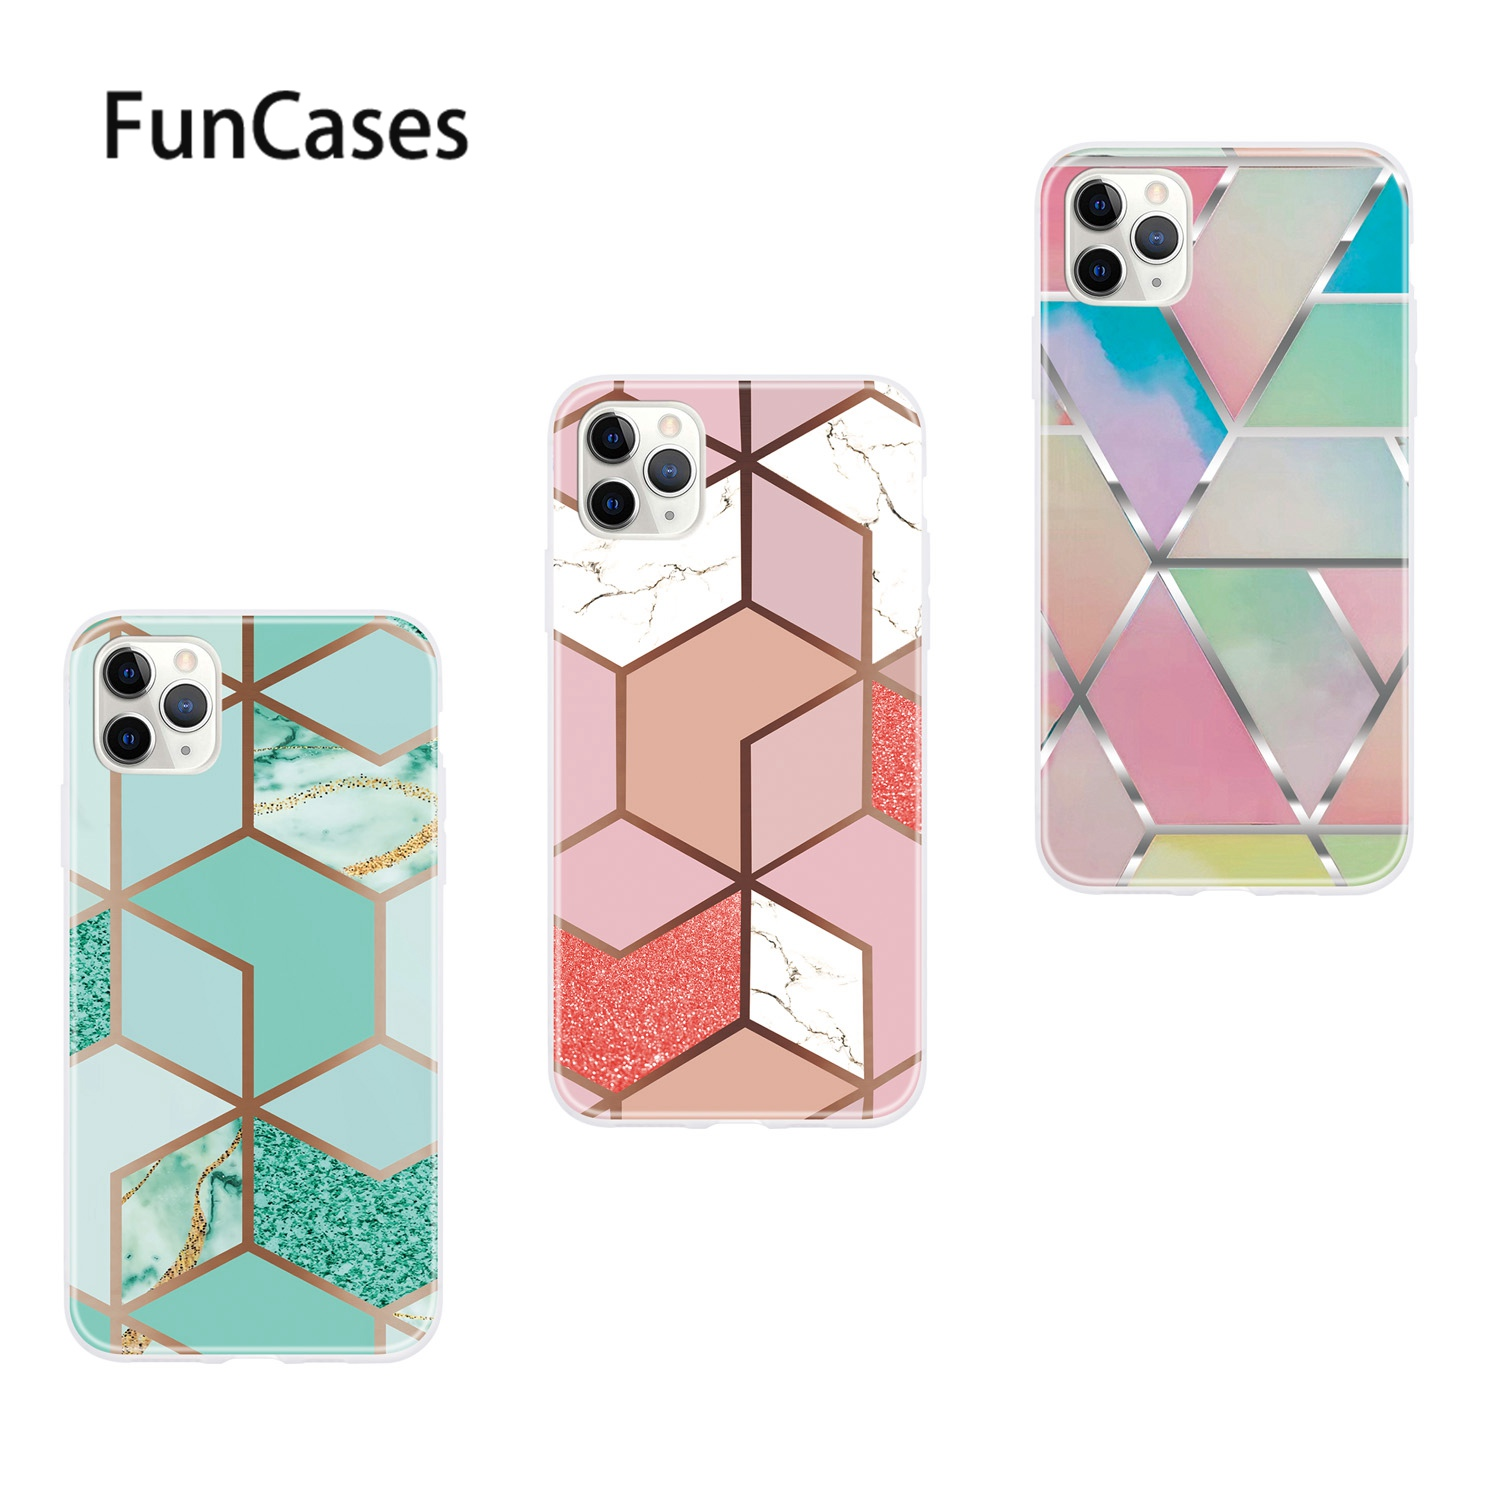 Carcaso <font><b>iPhone</b></font> <font><b>X</b></font> 용 다채로운 소프트 TPU 케이스 Apple <font><b>iPhone</b></font> estojo <font><b>XS</b></font> 8 Plus 11 Pro Max 7 R 6S 6 <font><b>xS</b></font> 소프트 TPU 케이스 보호 image